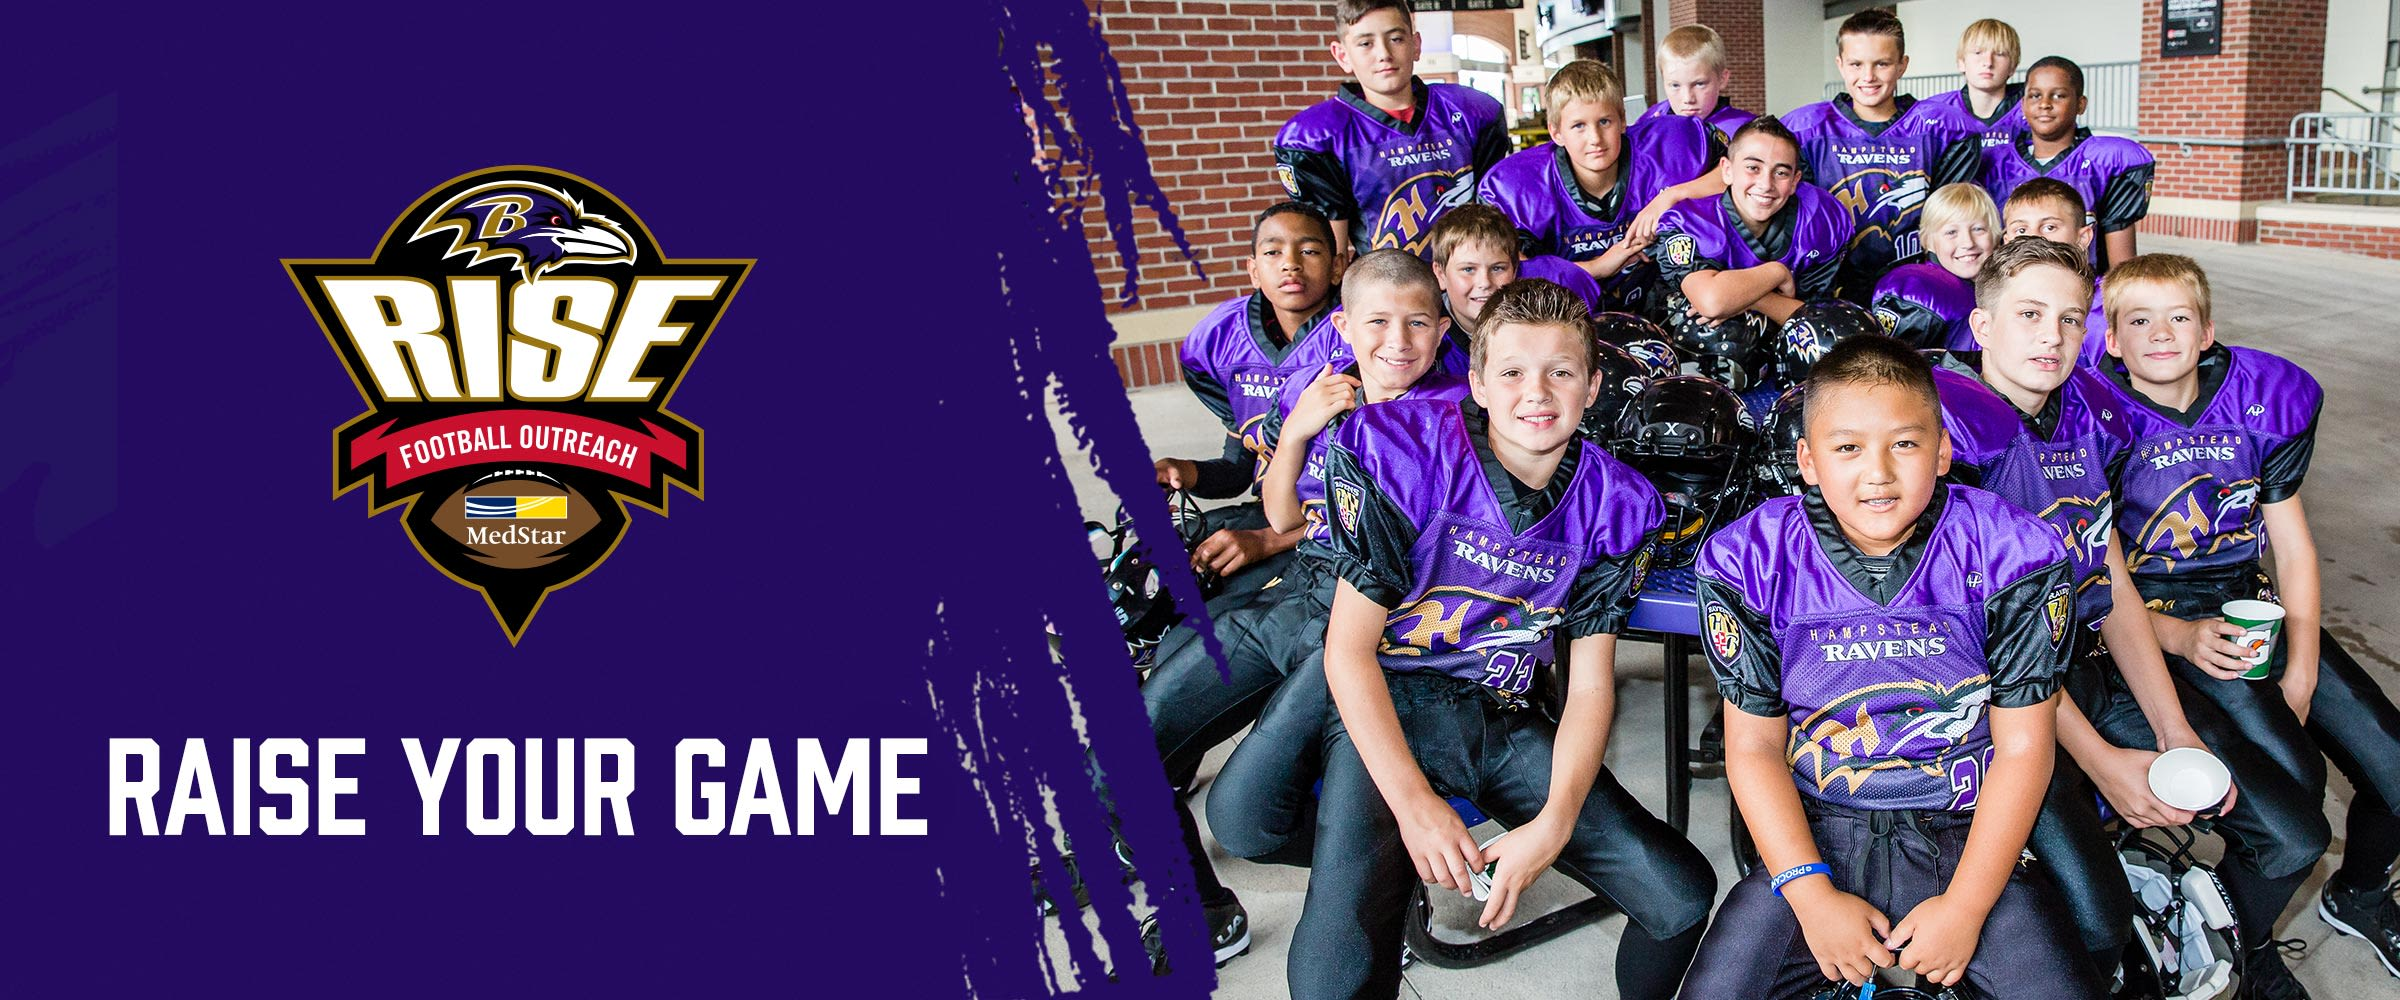 Ravens RISE Football Outreach presented by MedStar  Raise your Game